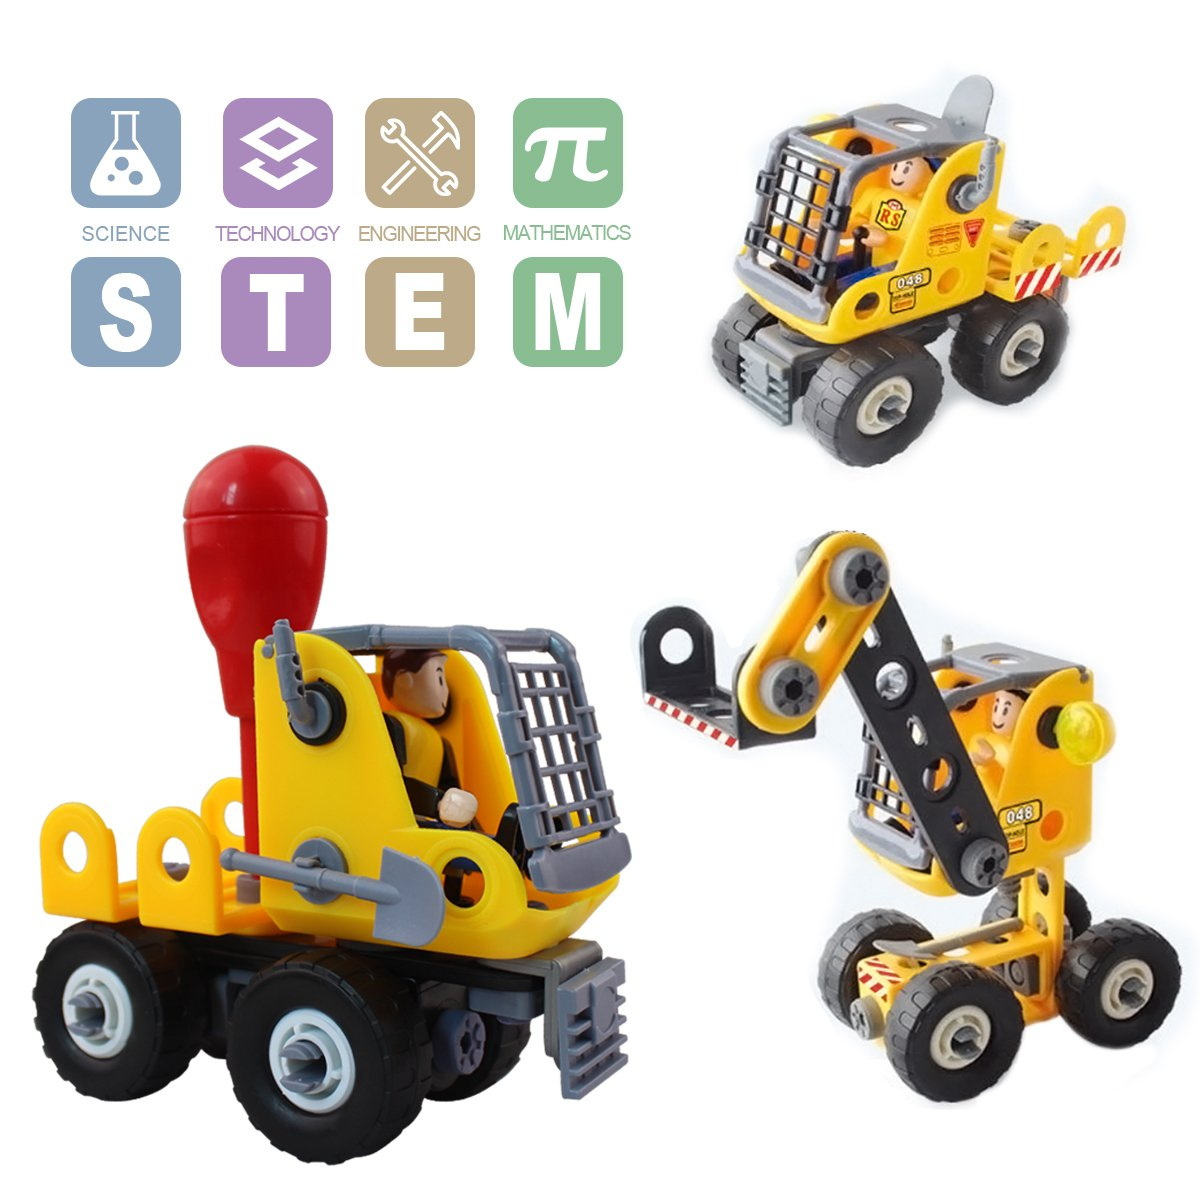 Fonxian Kids Toys Stem Learning 3-in-1 Construction Set Educational Learning Kit for Boys & Girls Age 5 6 7 Year Old